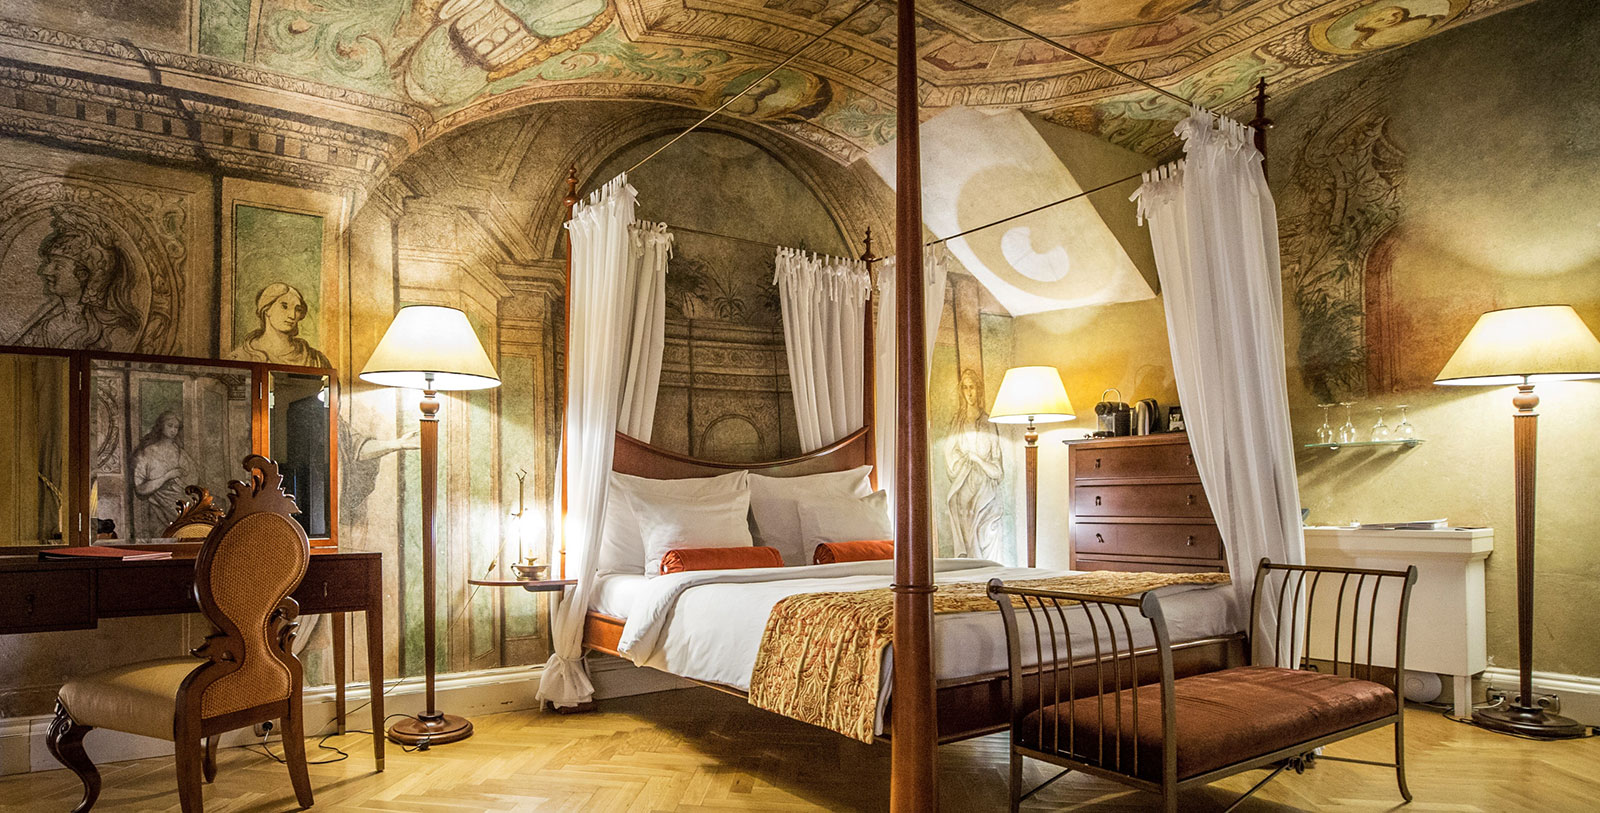 Image of deluxe baroque room, The Mozart Prague, 1770, Member of Historic Hotels Worldwide, Prague, Czech Republic, Discover